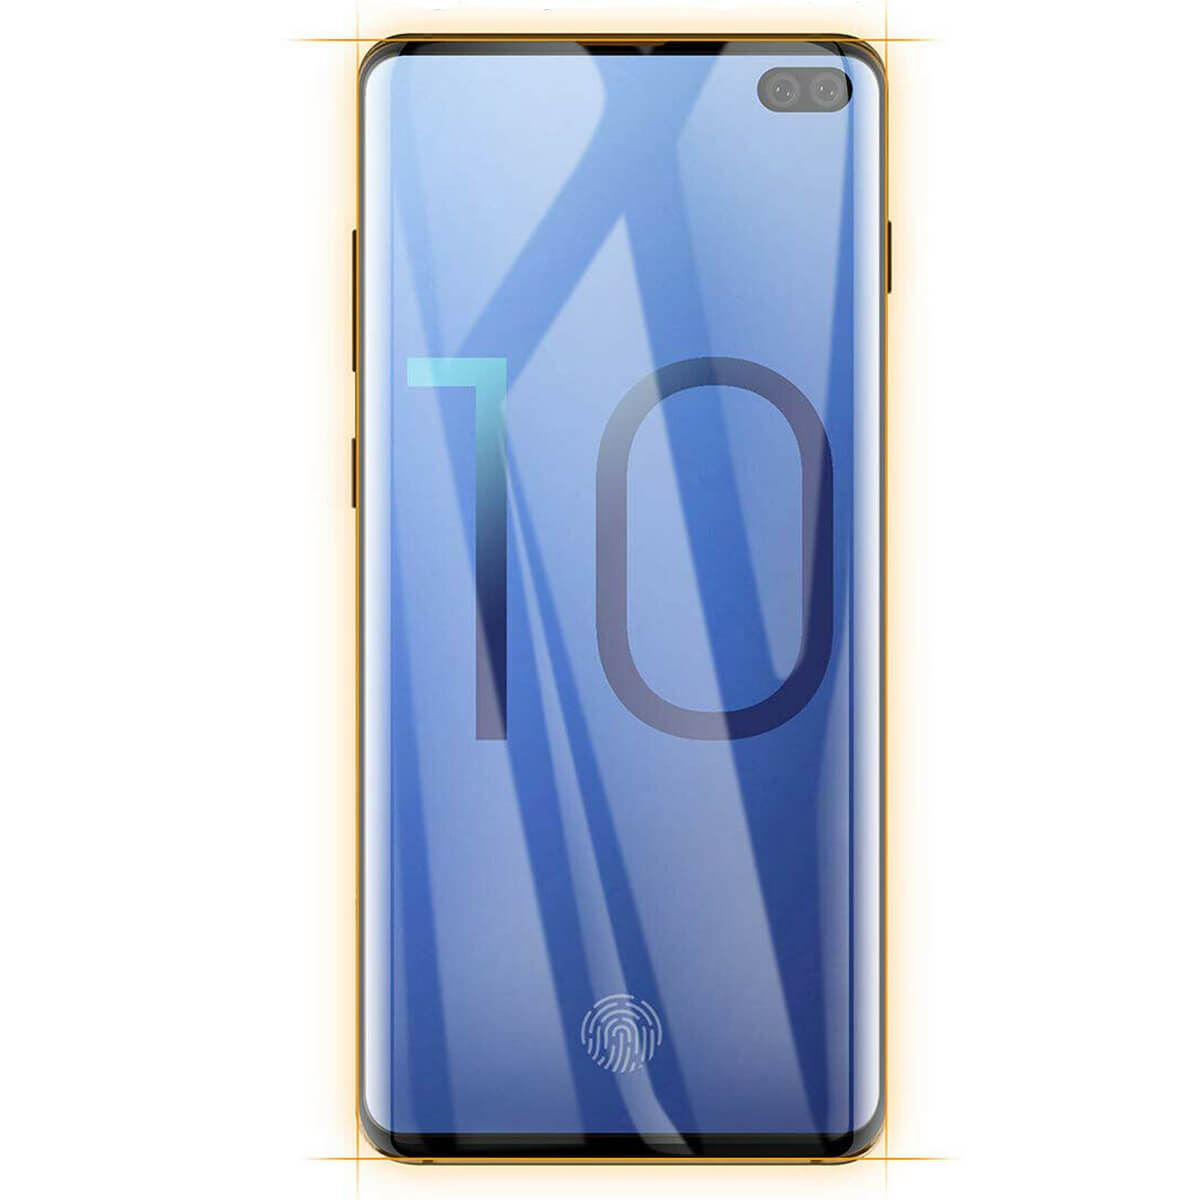 Screen-Protector-Film-Full-Coverage-Curved-Fit-Samsung-Galaxy-S10-S10E-Plus thumbnail 3